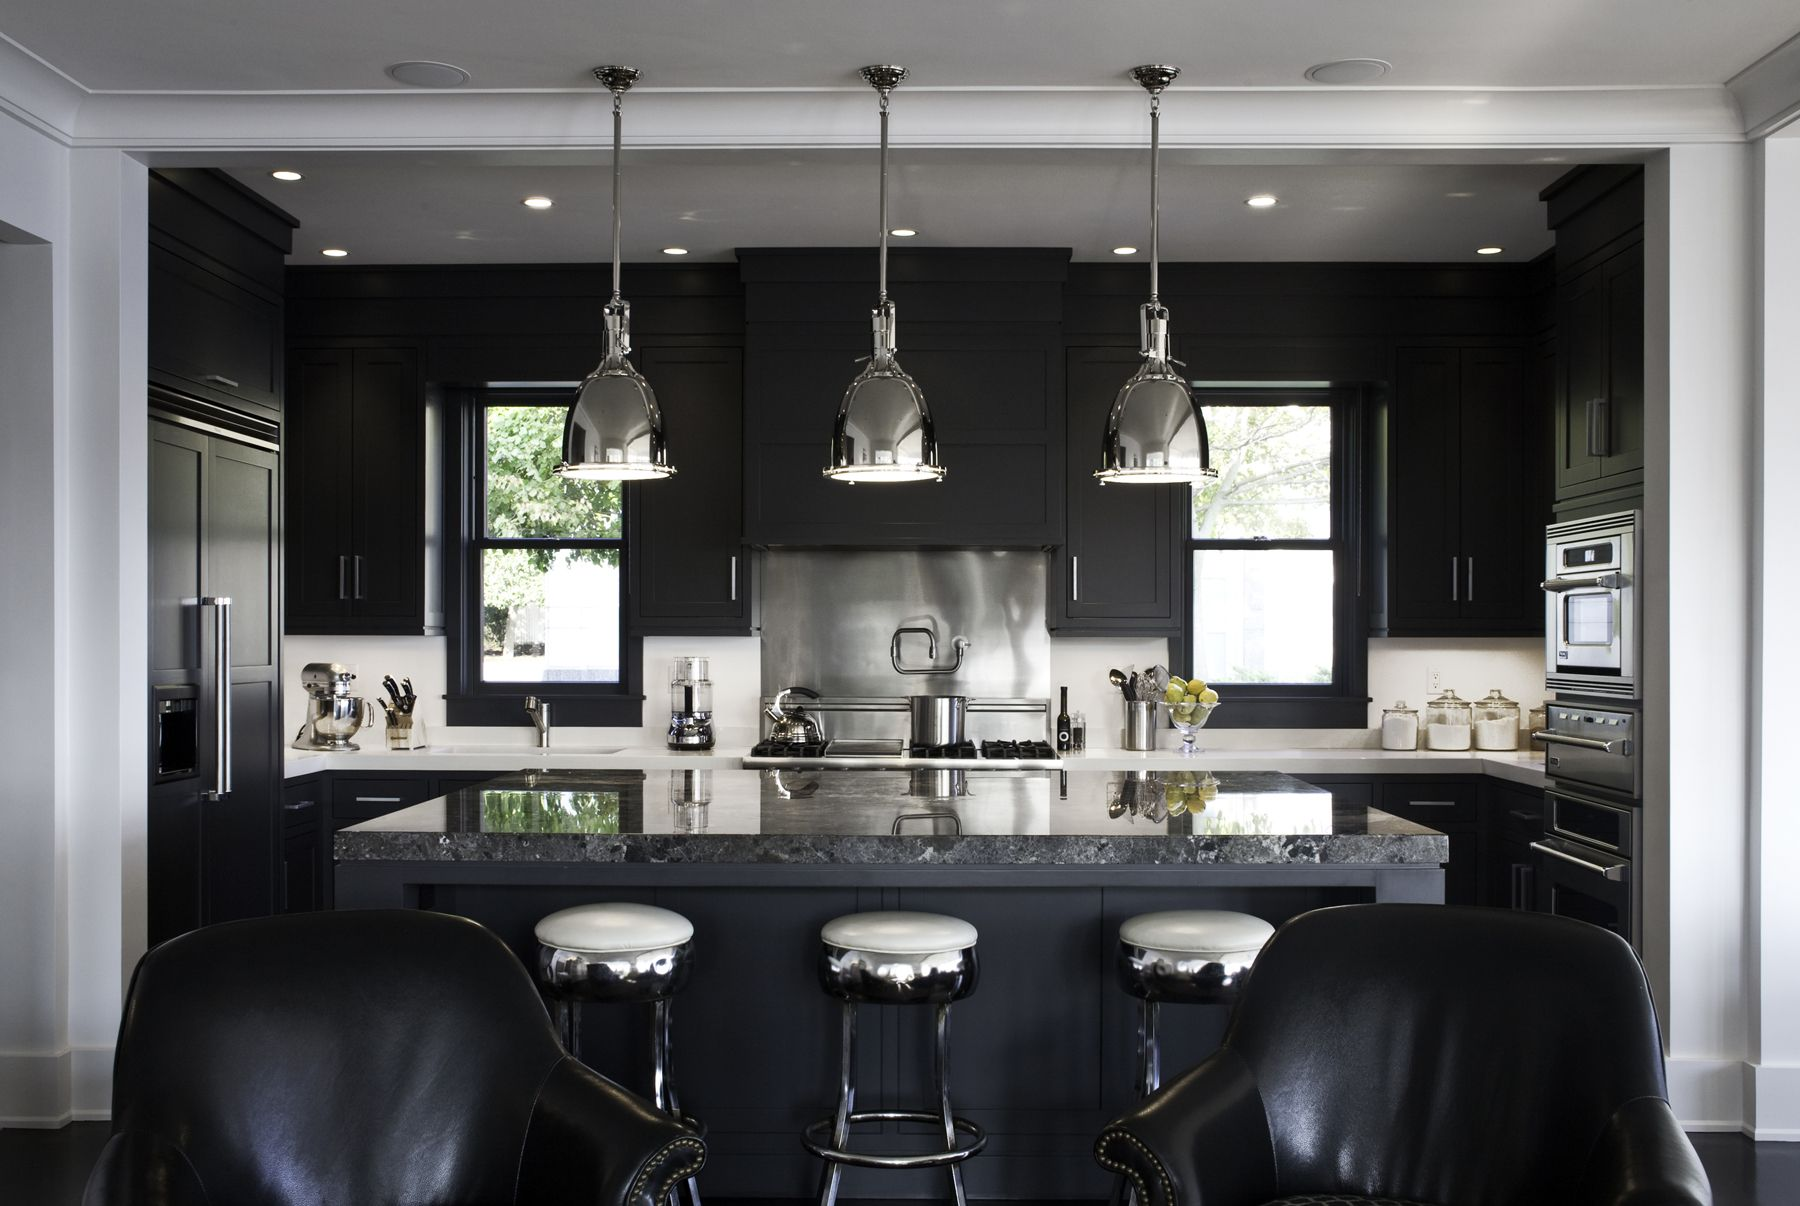 Kitchens With Black Cabinets Unique 30 Best Black Kitchen Cabinets  Kitchen Design Ideas With Black . Design Decoration